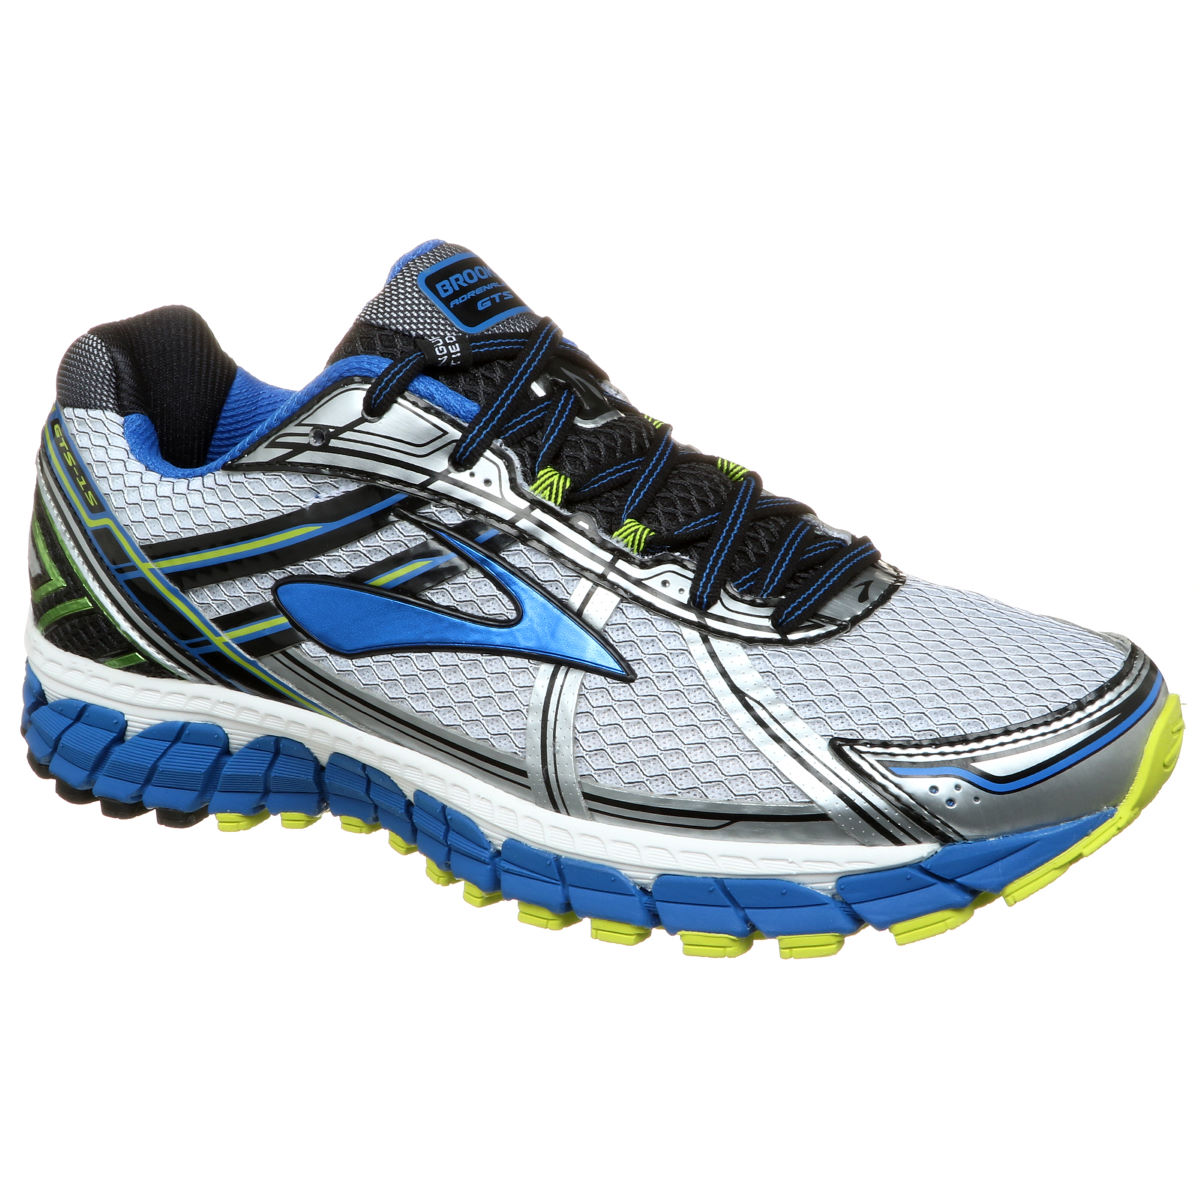 Brooks Adrenaline GTS 15 Shoes () - UK 7.5 White/Olympic/Lime